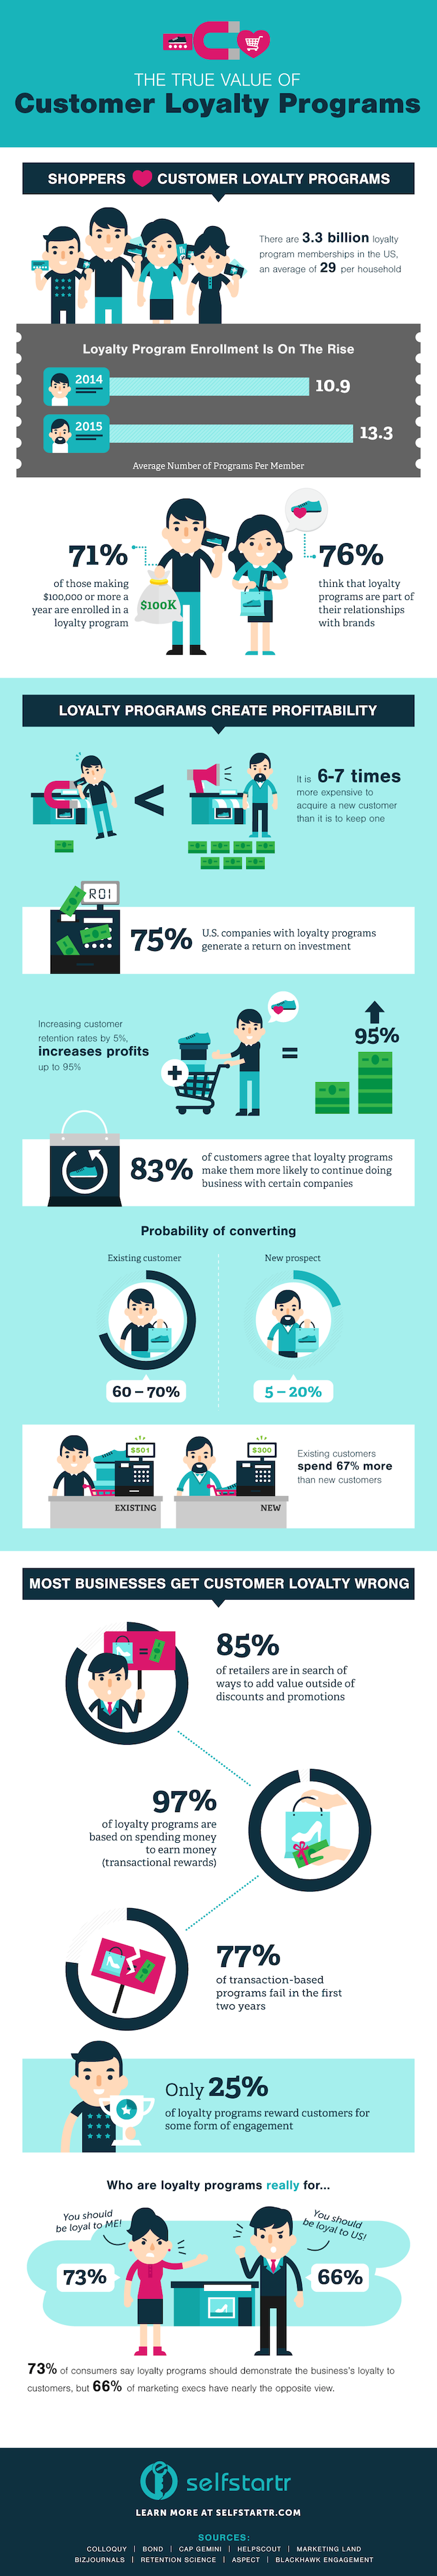 customer-loyalty-programs-infographic.png